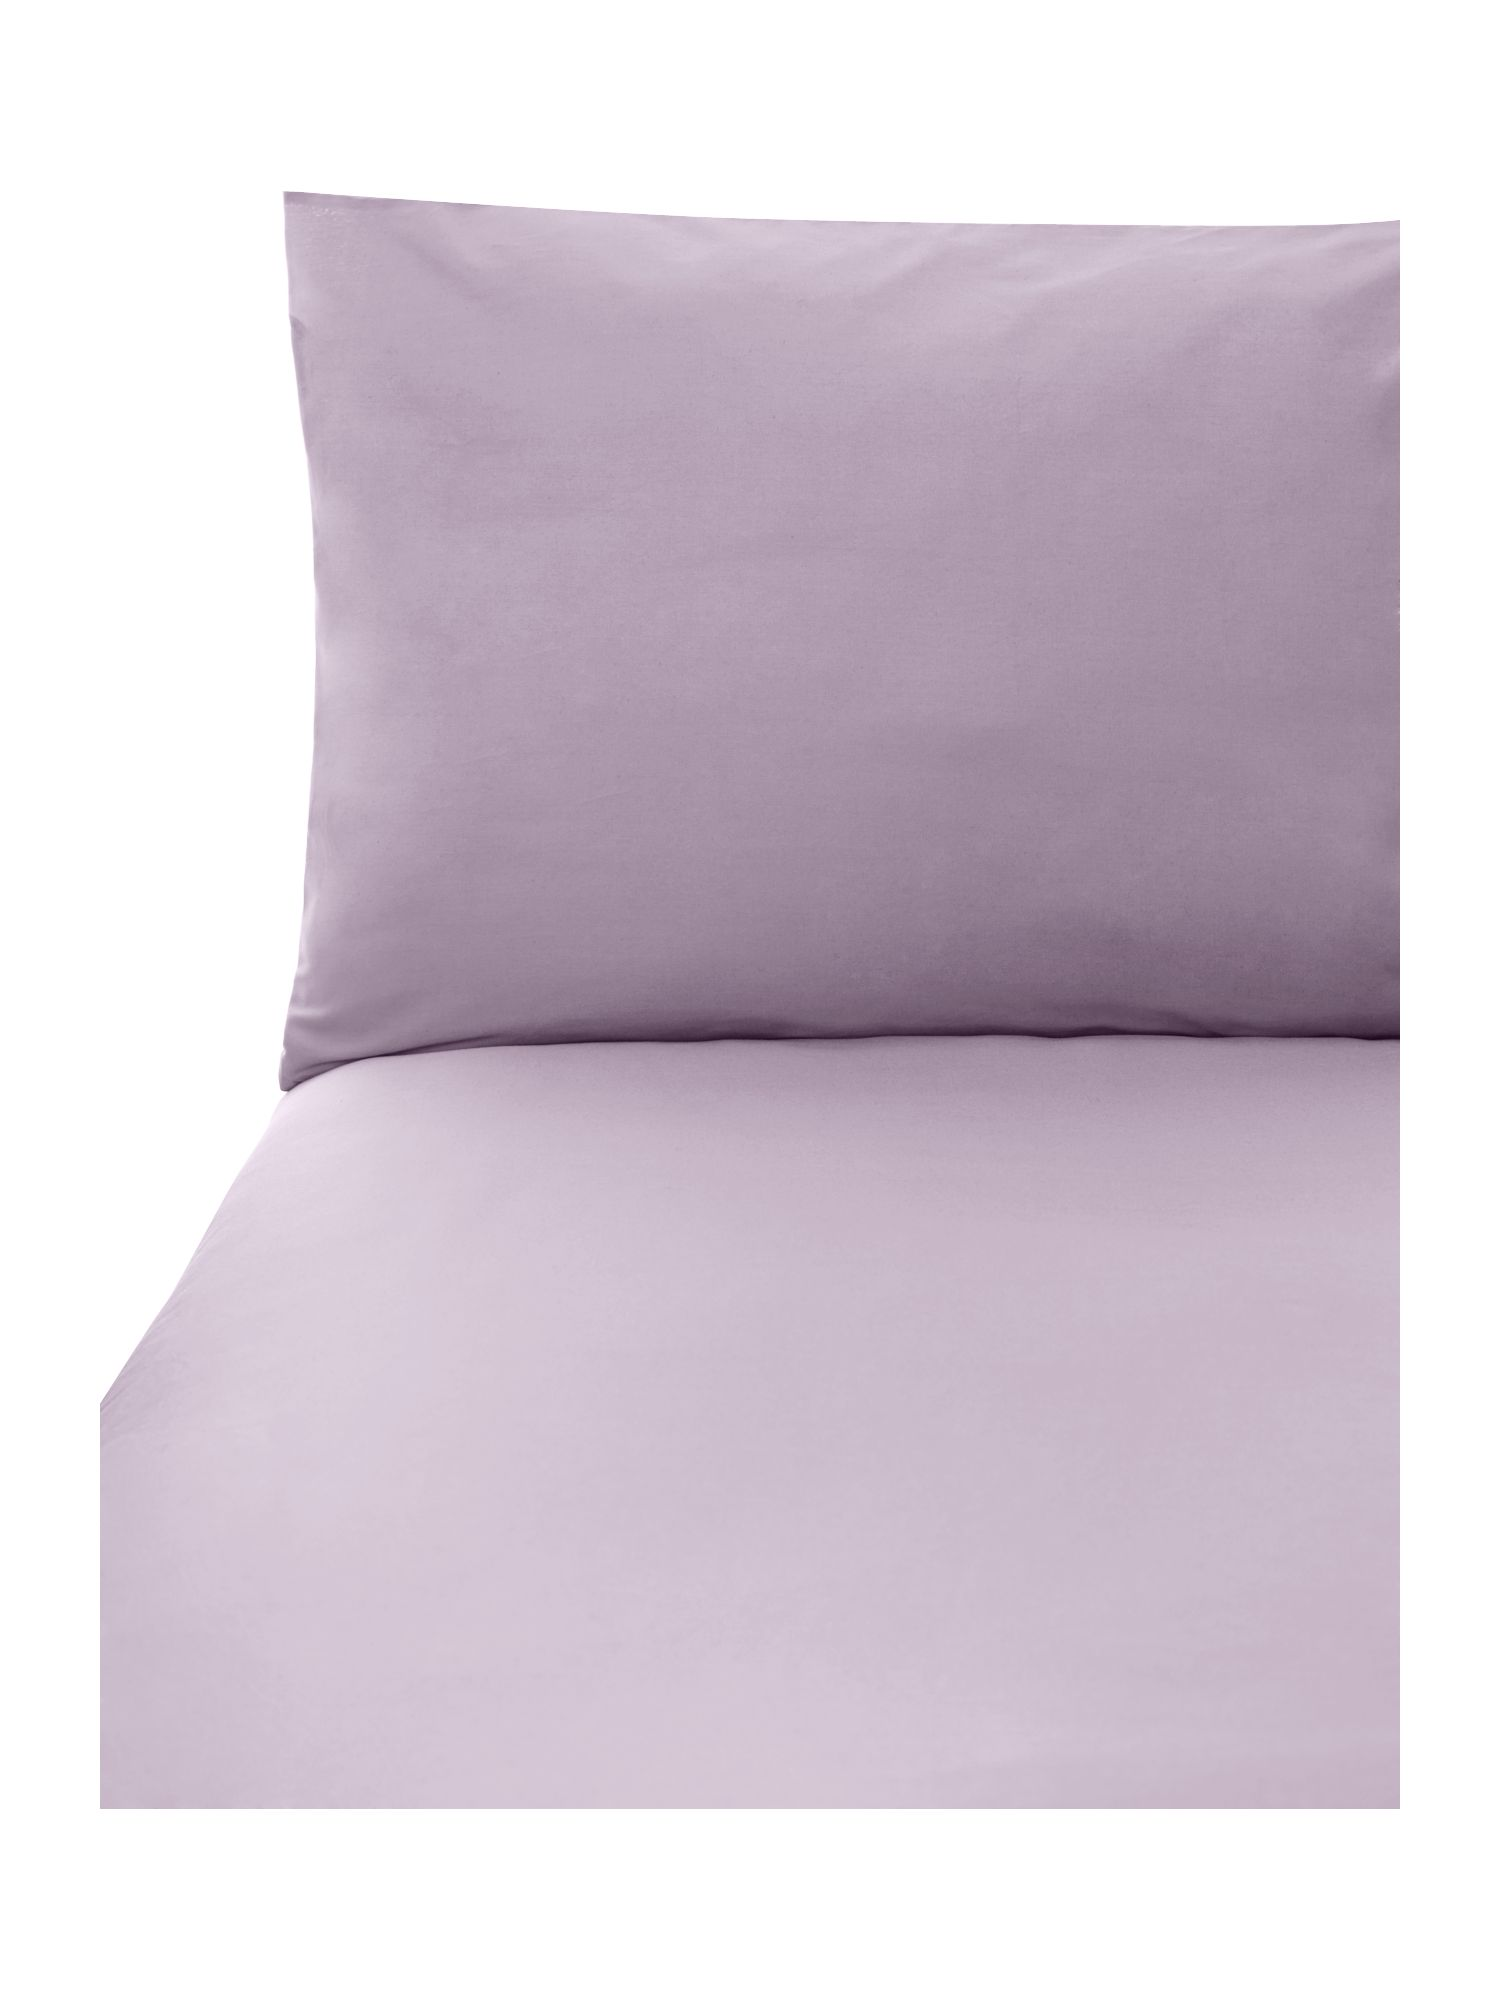 Lilac 100% cotton super king flat sheet